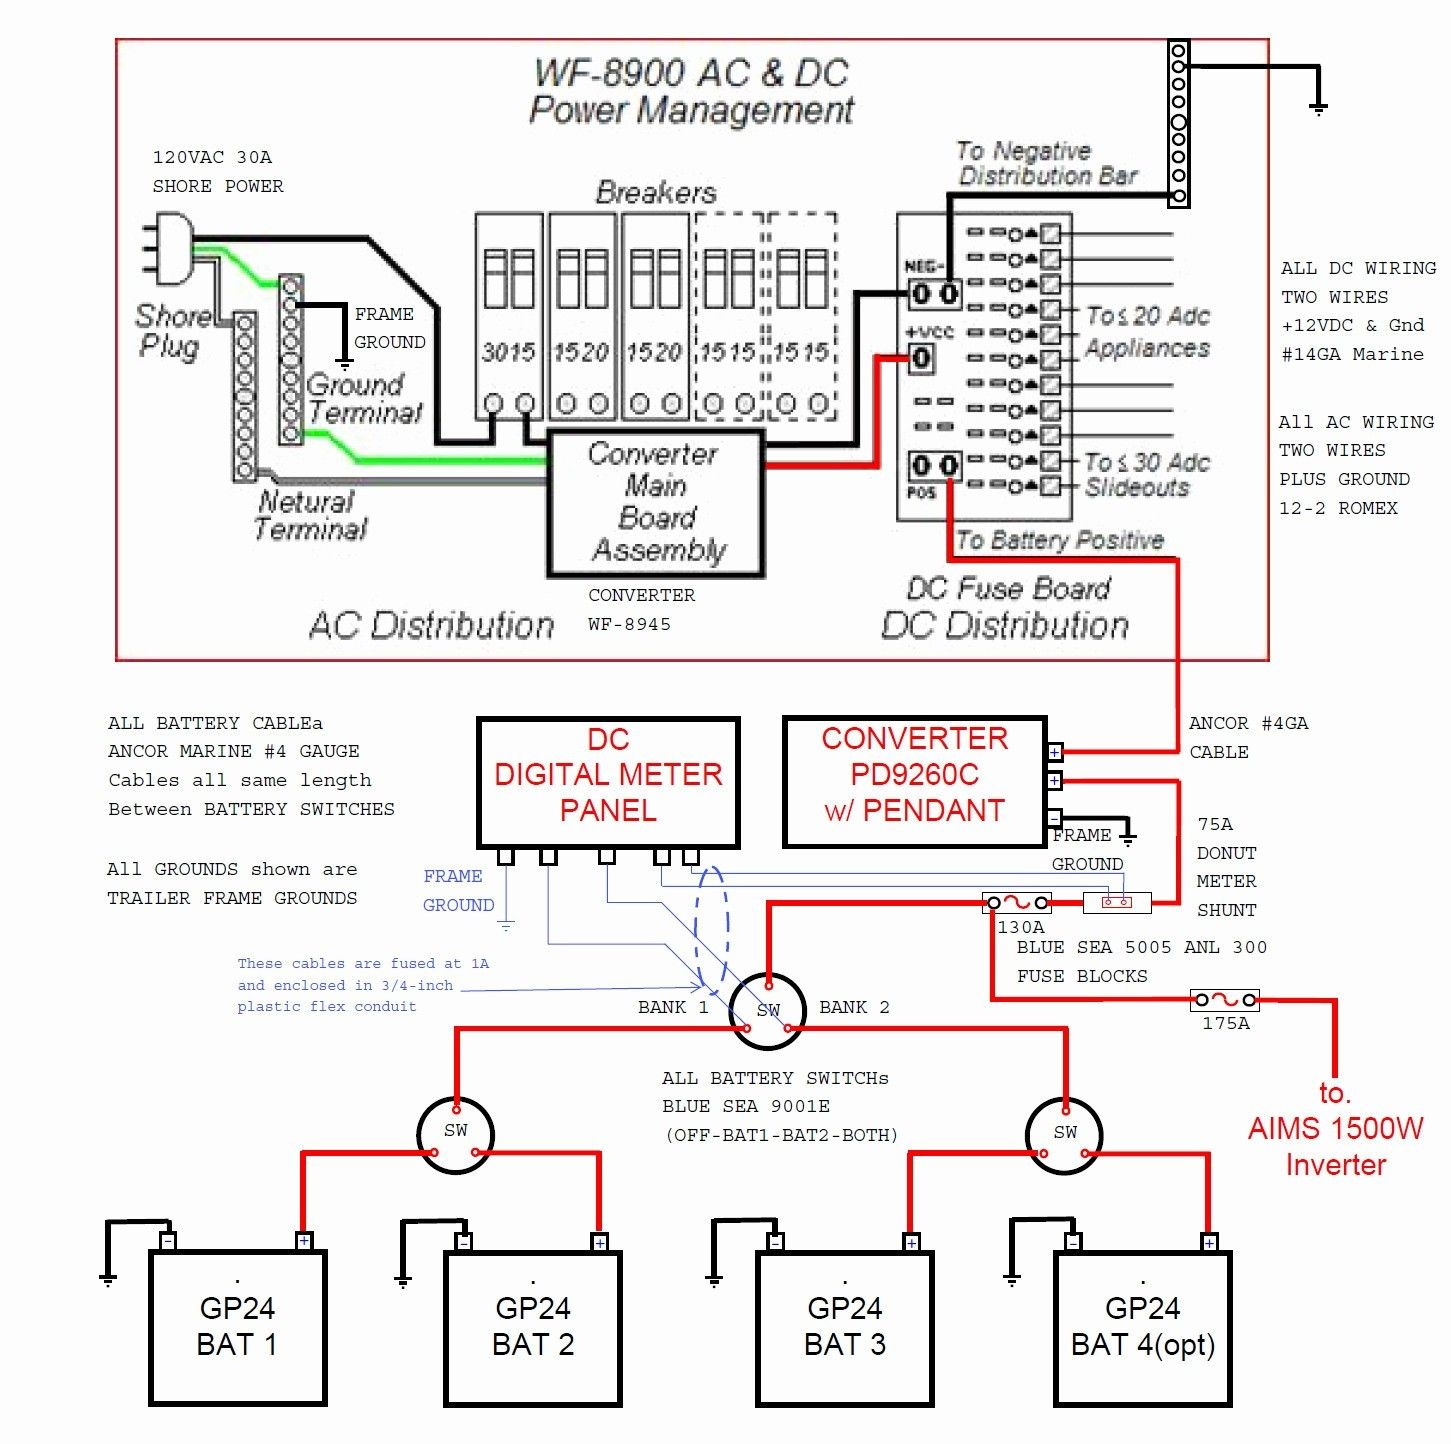 30 amp rv plug wiring diagram inspirational wiring diagram for rv inverter best 50 amp wiring diagram reference photos of 52 luxury 30 amp rv plug wiring  [ 1451 x 1444 Pixel ]